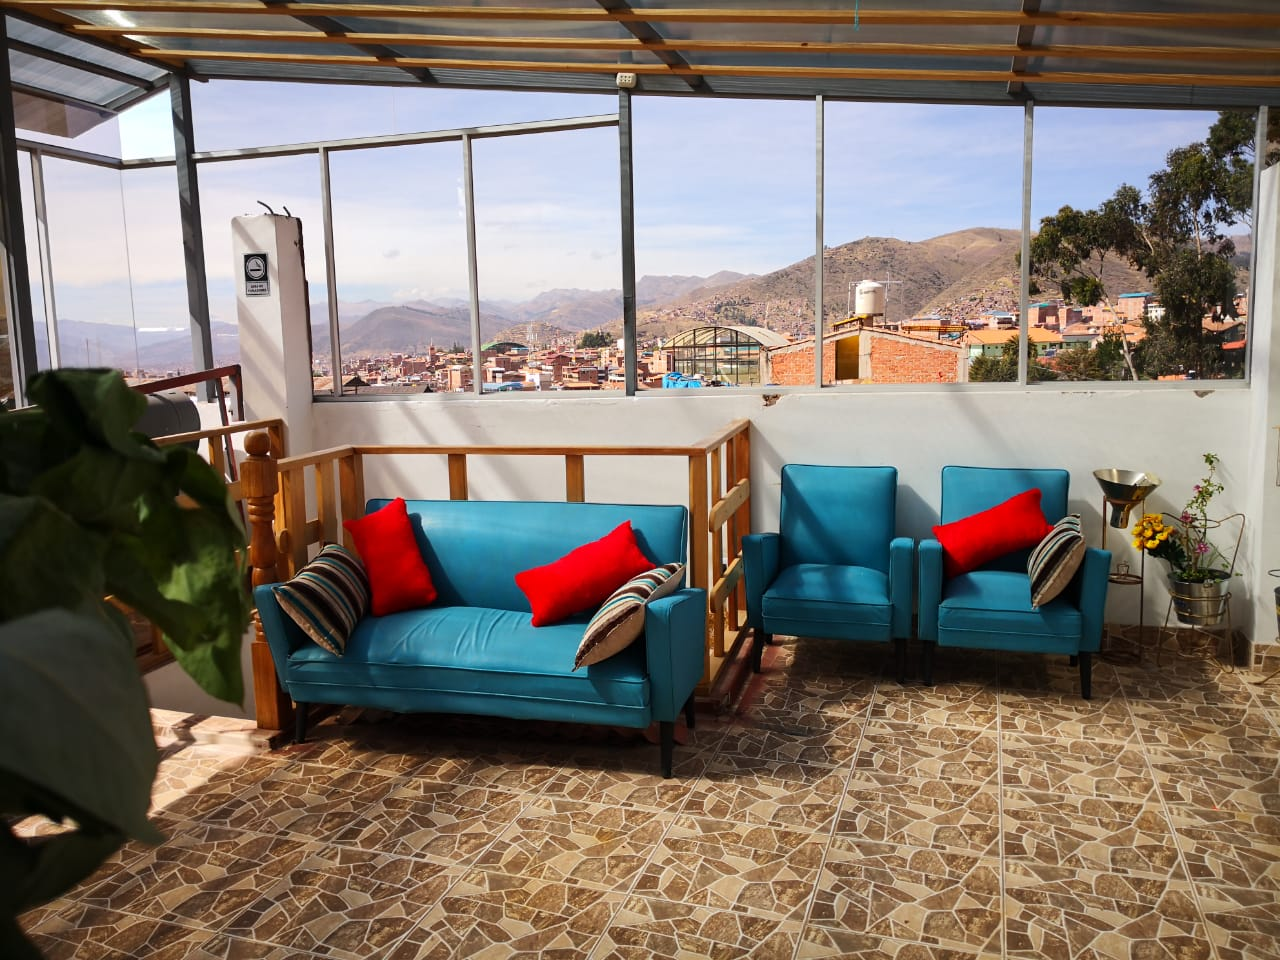 The Andean Rooftop Guesthouse